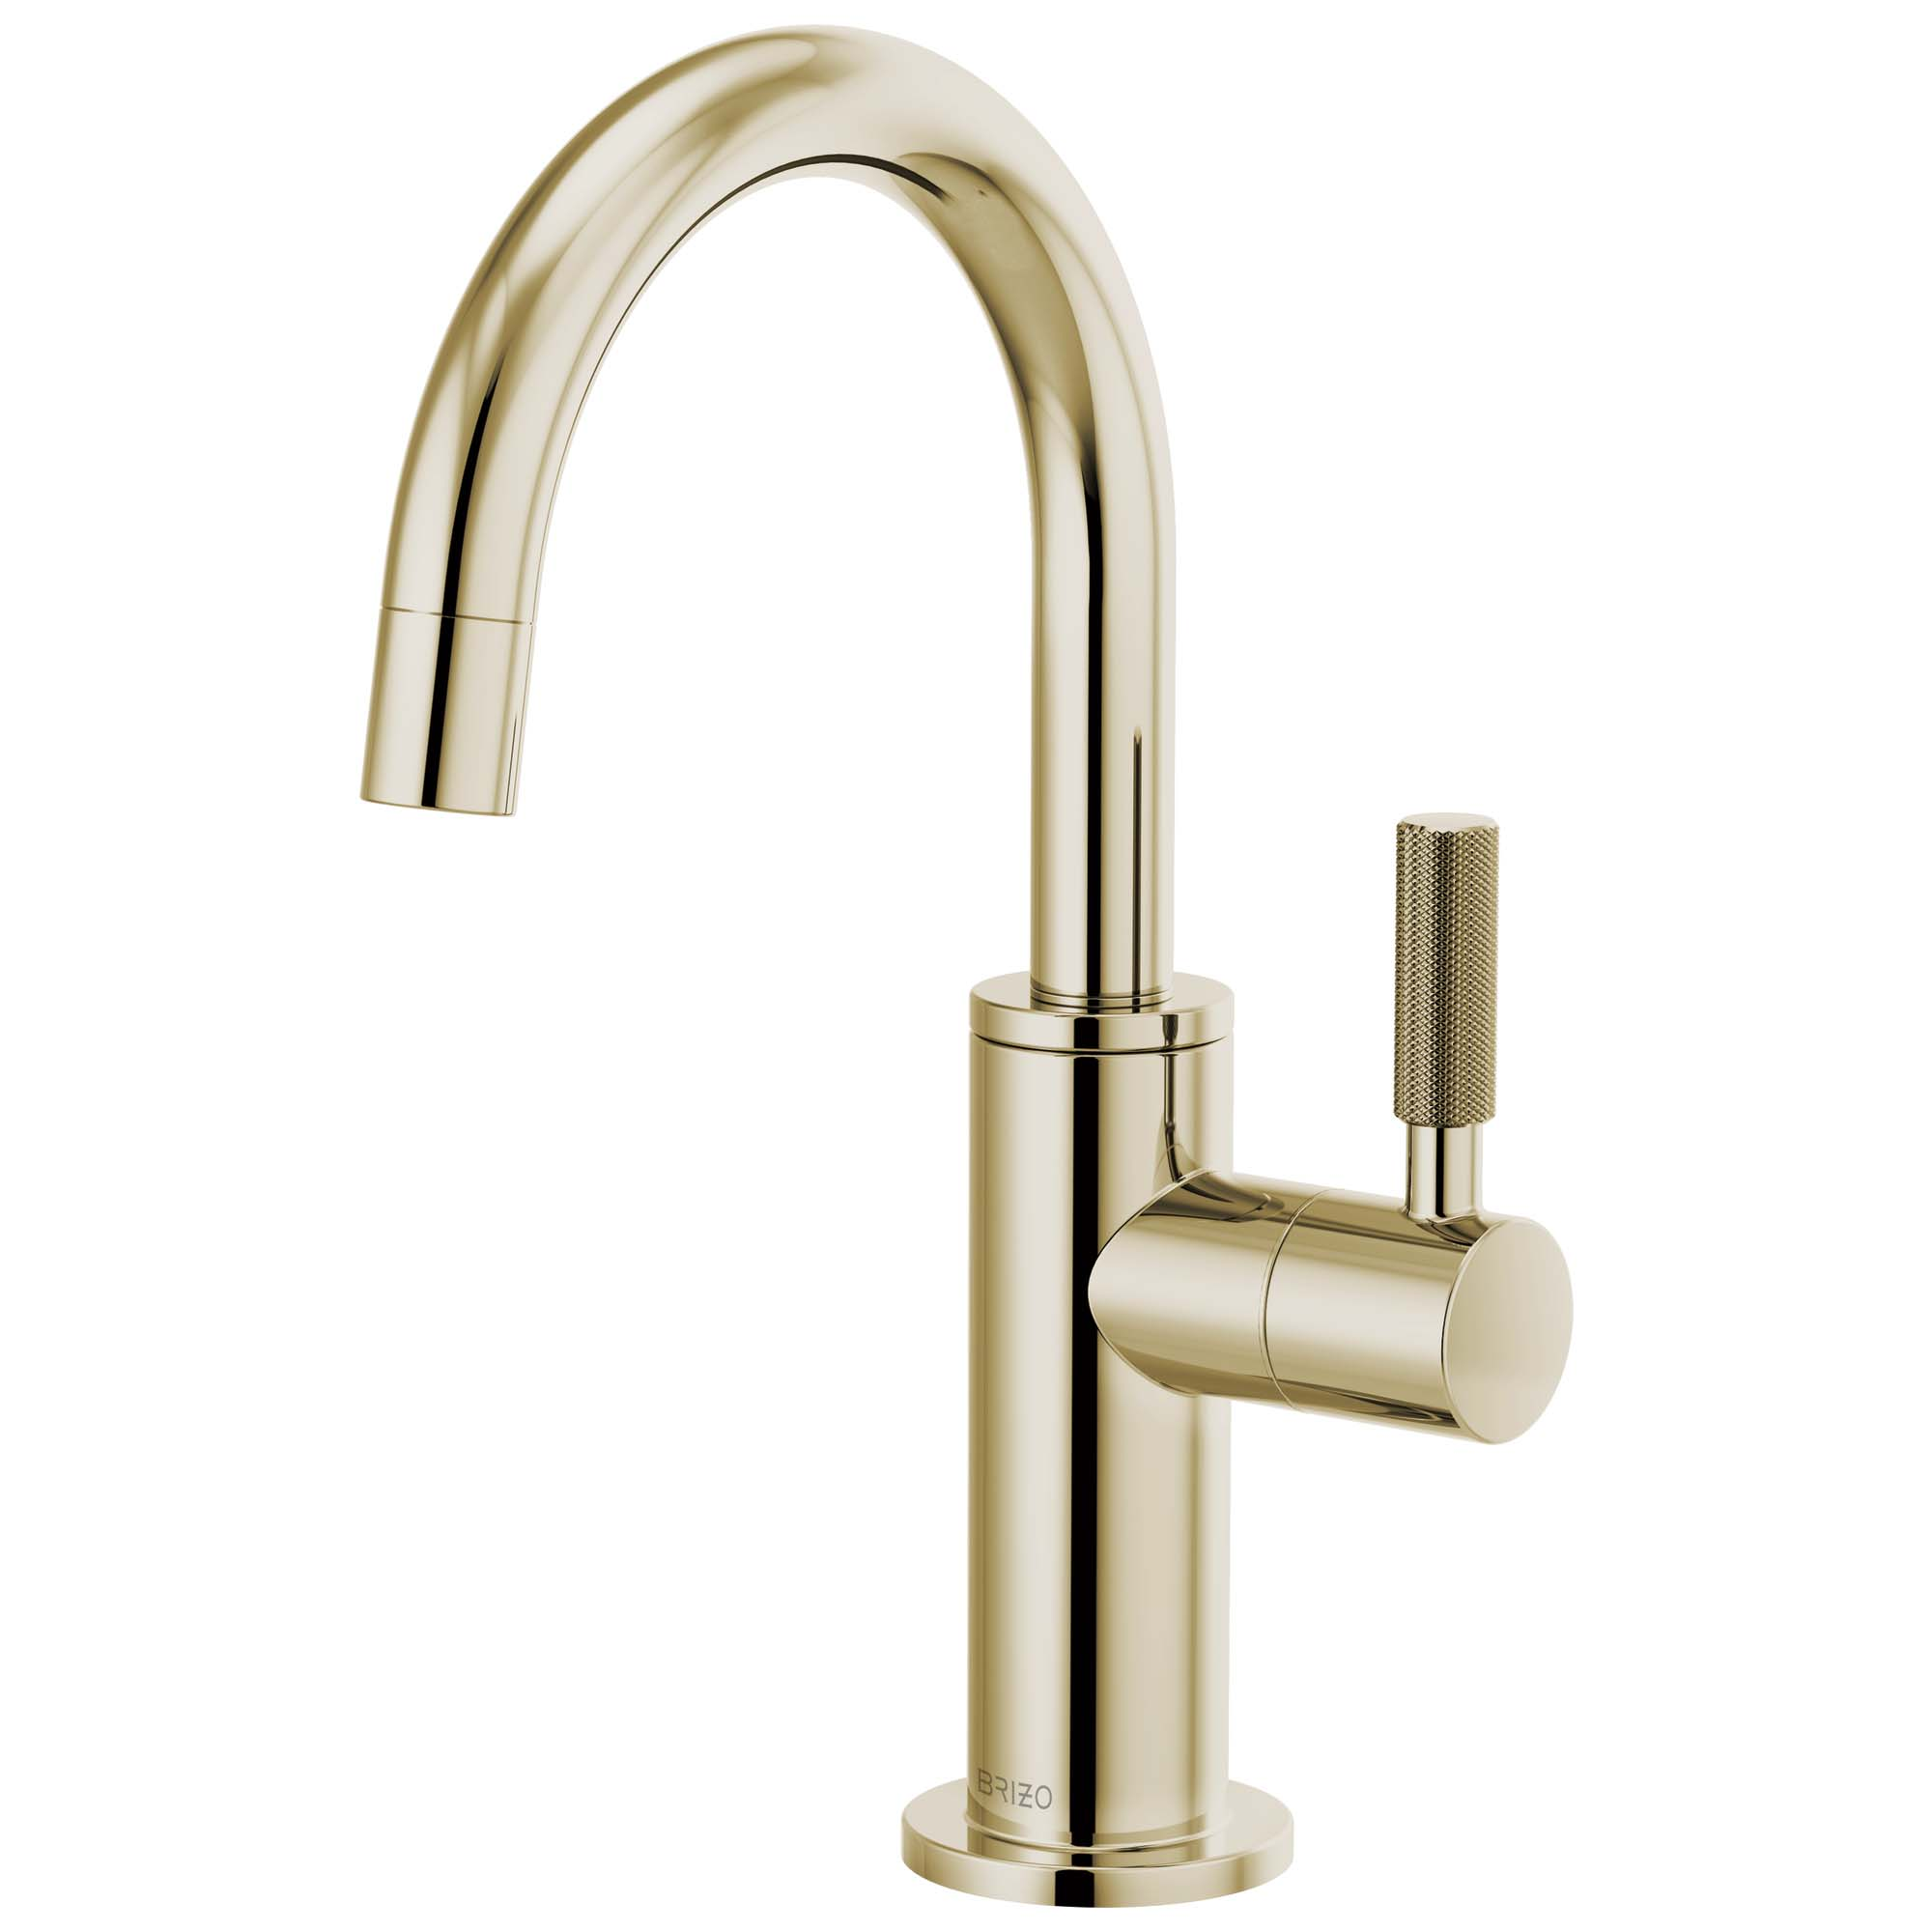 Brizo 61343LF-C-PN Litze Beverage Faucet with Arc Spout and Knurled Handle - Polished Nickel